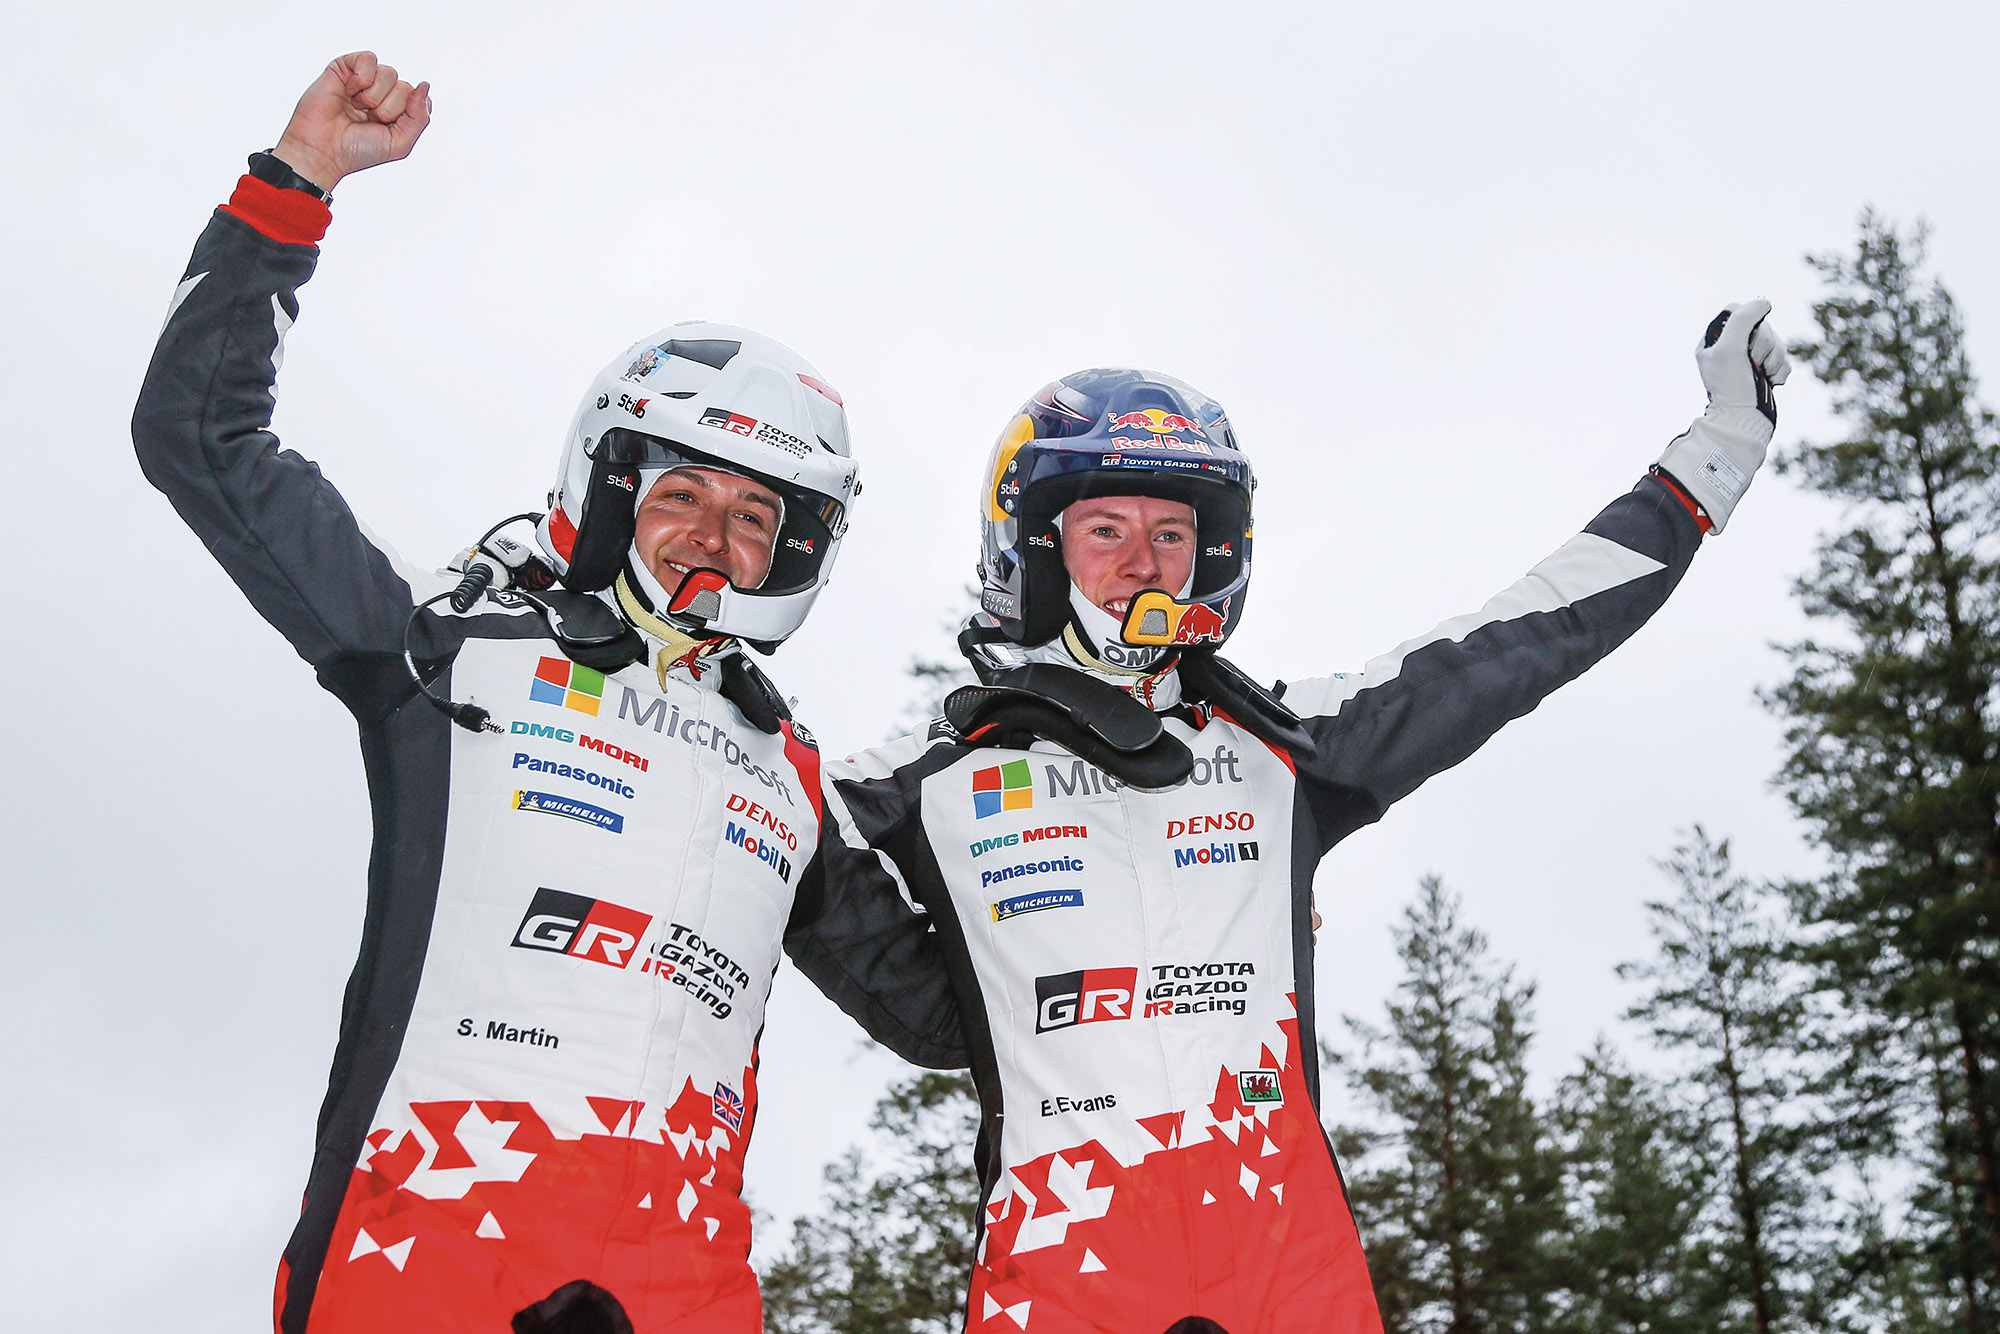 Toyota Evans win WRC rally